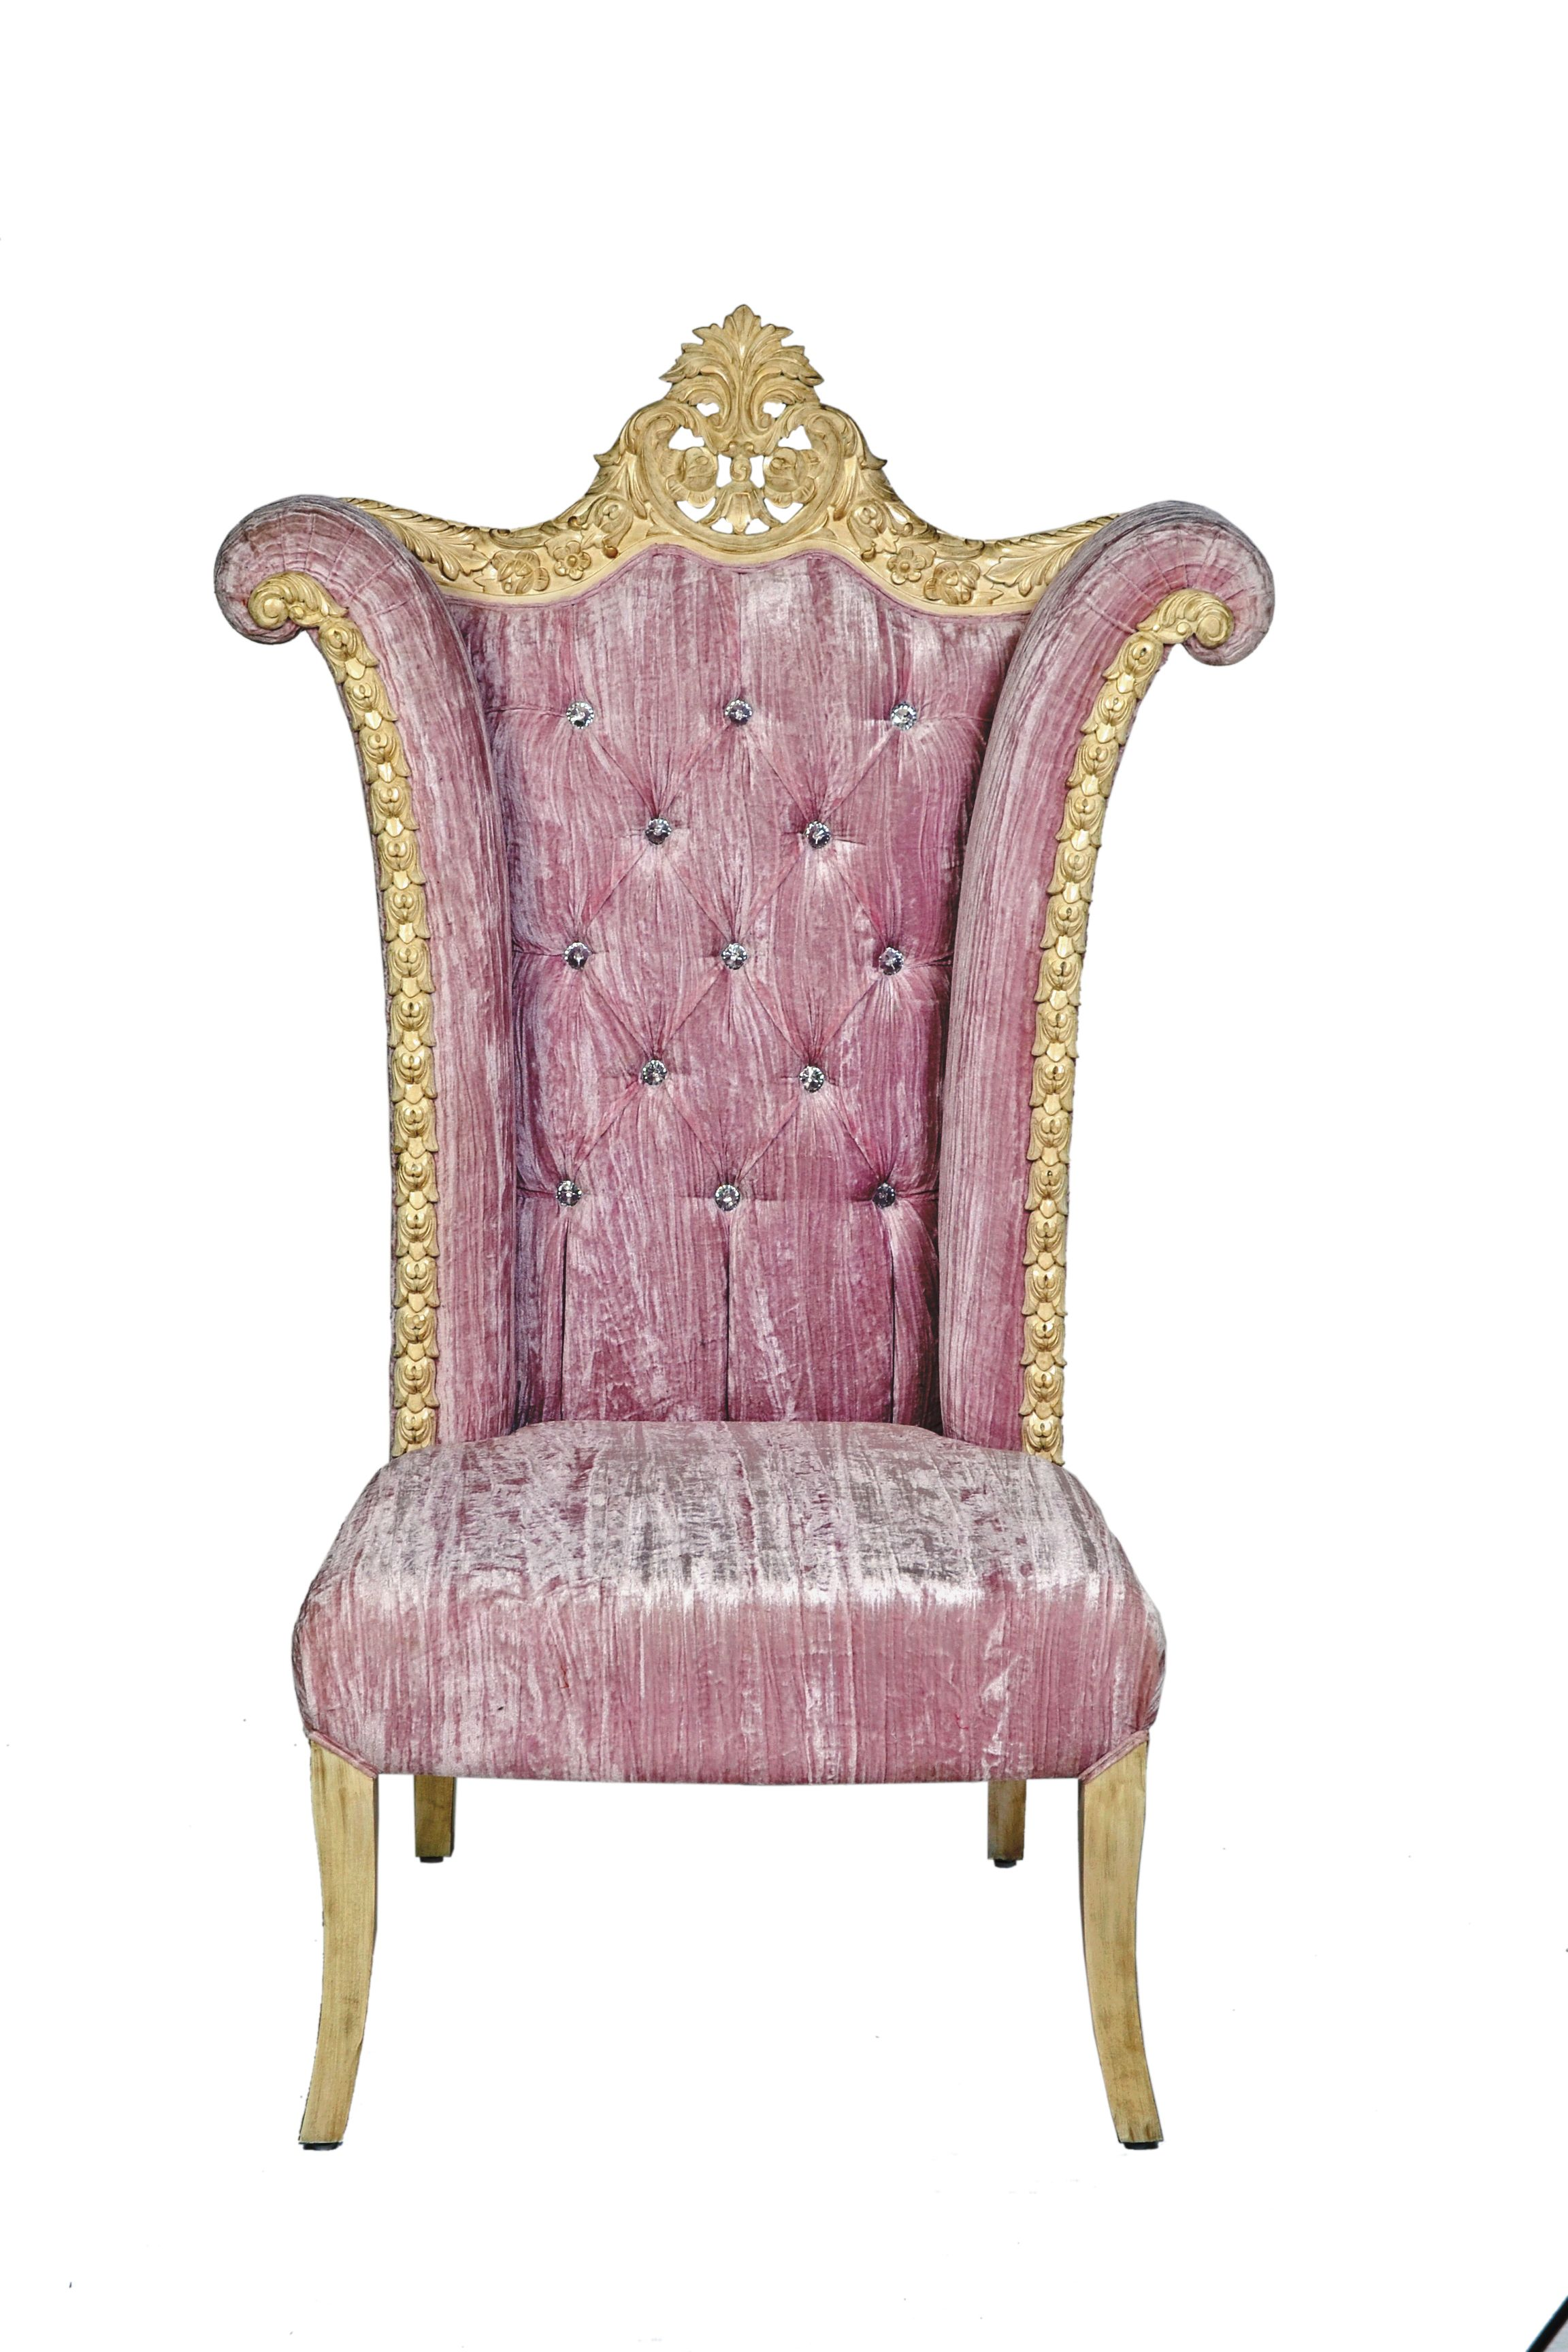 Antique princess chair - High Back Taj Chair In Royal Style Solid Hand Carved Rose Wood With Detailed